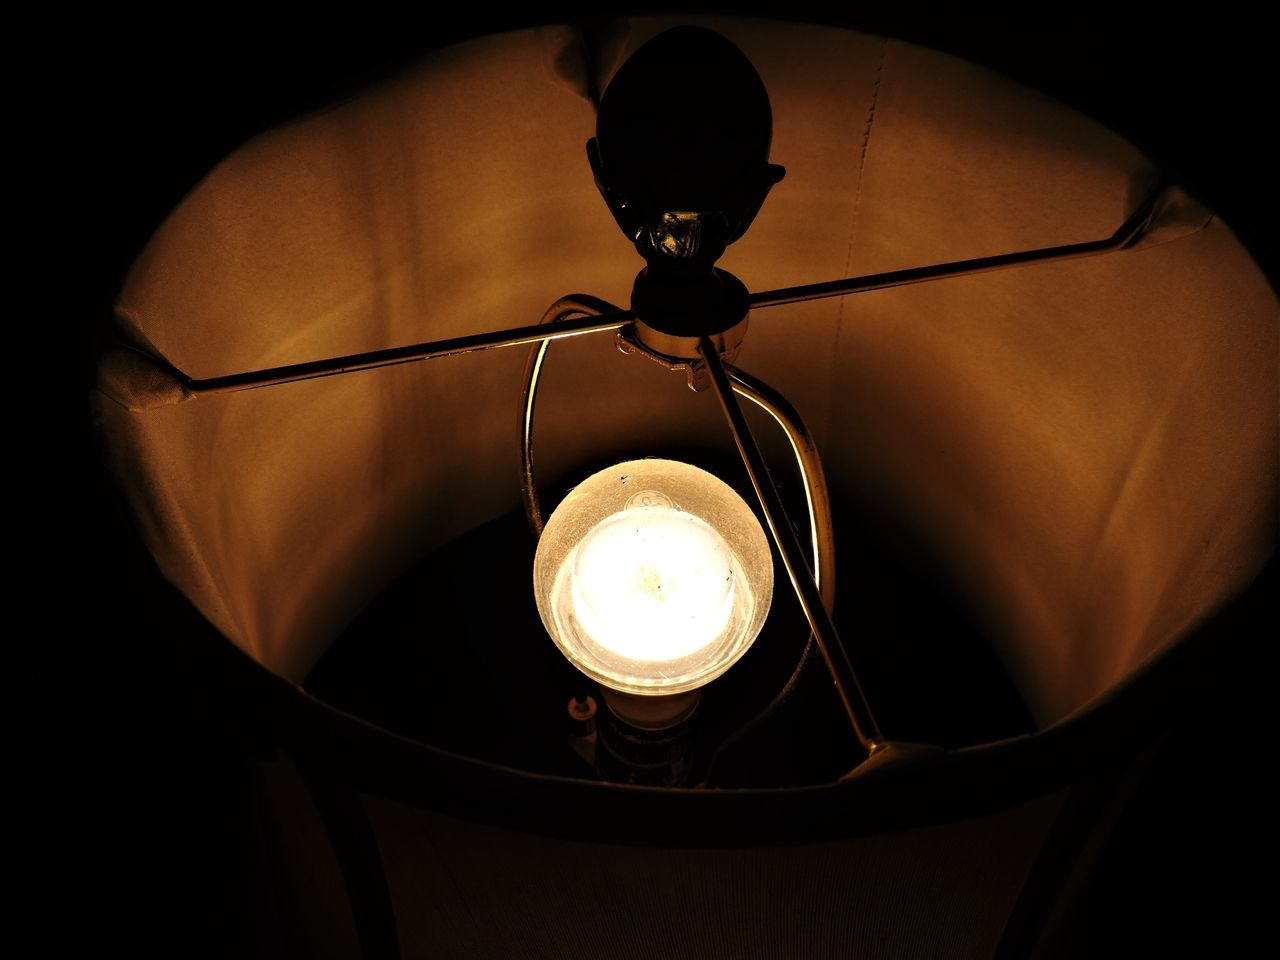 lighting equipment, illuminated, light bulb, electricity, glowing, electric lamp, indoors, no people, close-up, hanging, black background, lantern